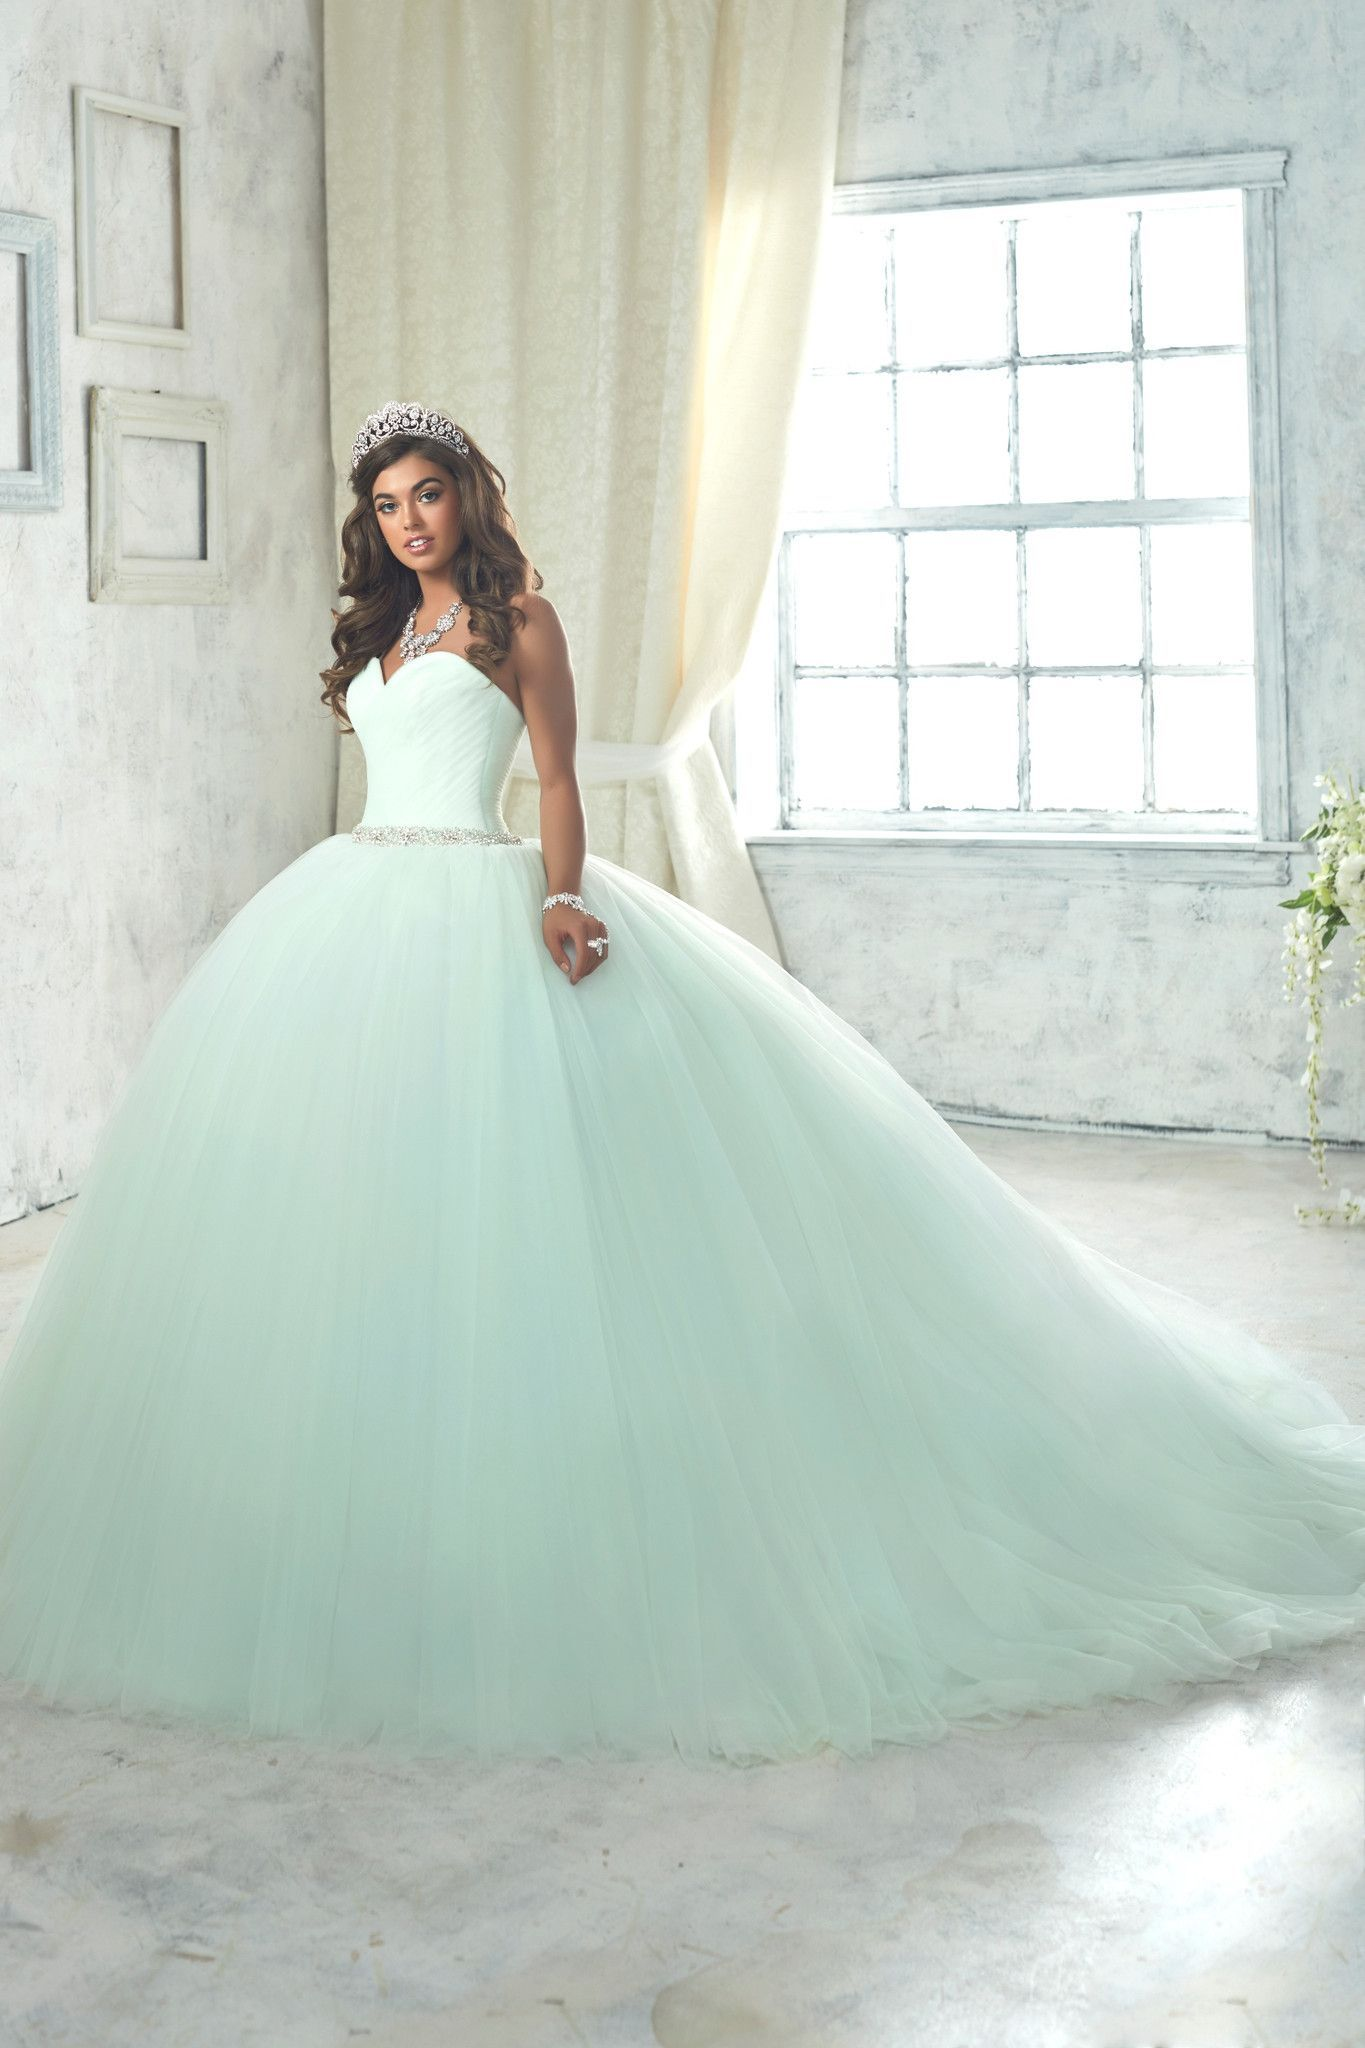 15 Stylish Quinceanera Dresses with Sleeves | Quinceanera ideas ...